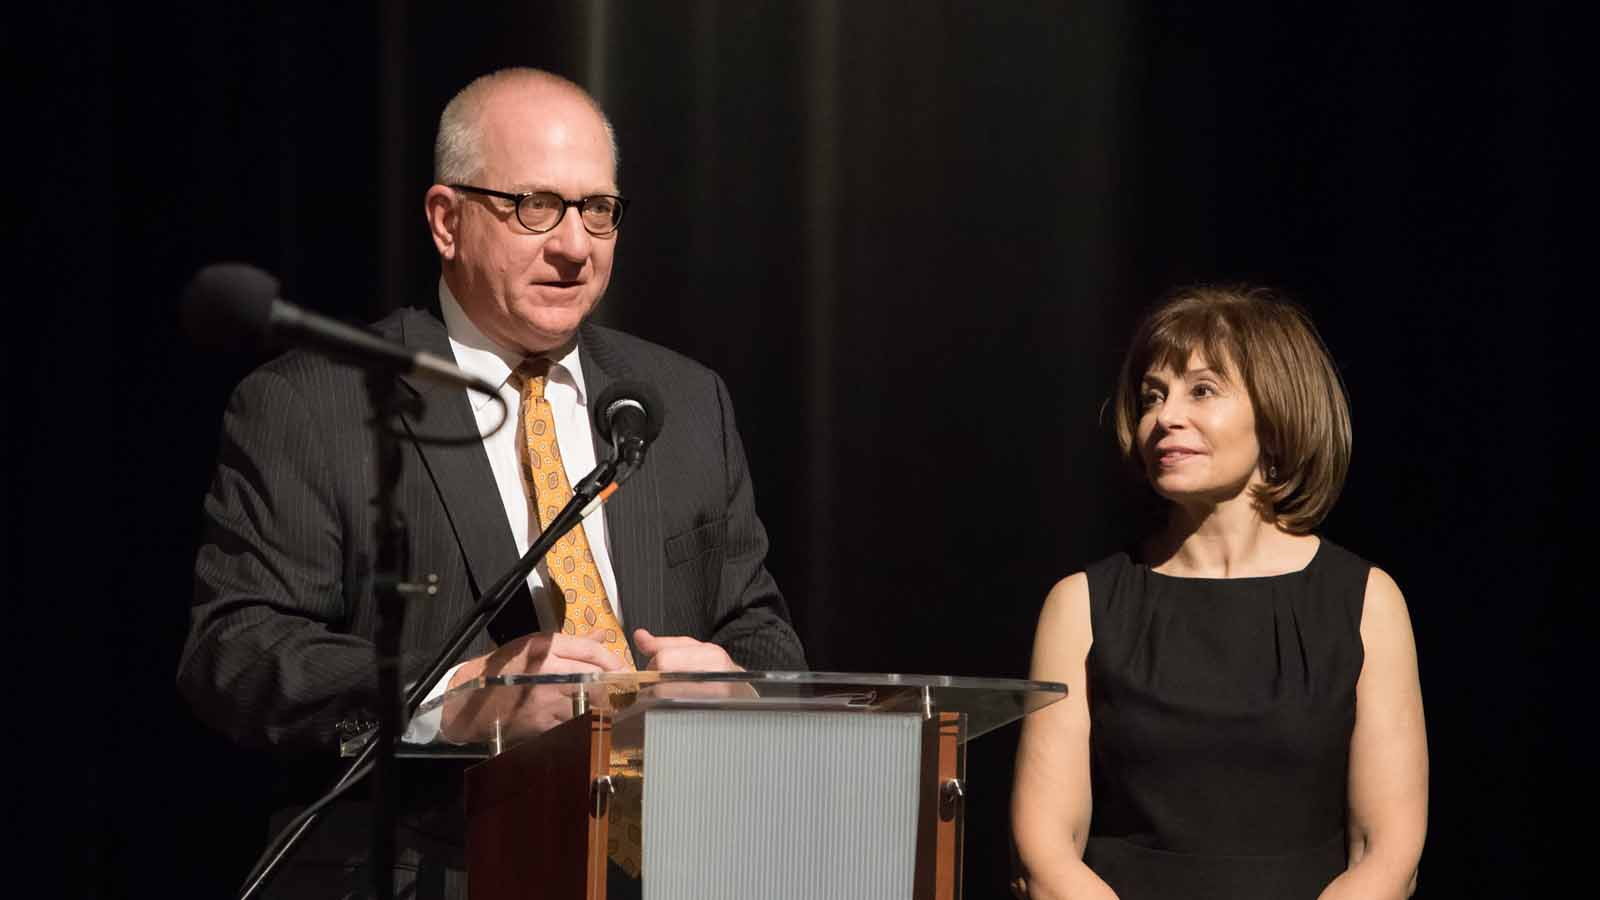 Dan Hart and JoAnn Falletta from the Buffalo Philharmonic Orchestra, praising the relationship the BPO enjoys with WNED